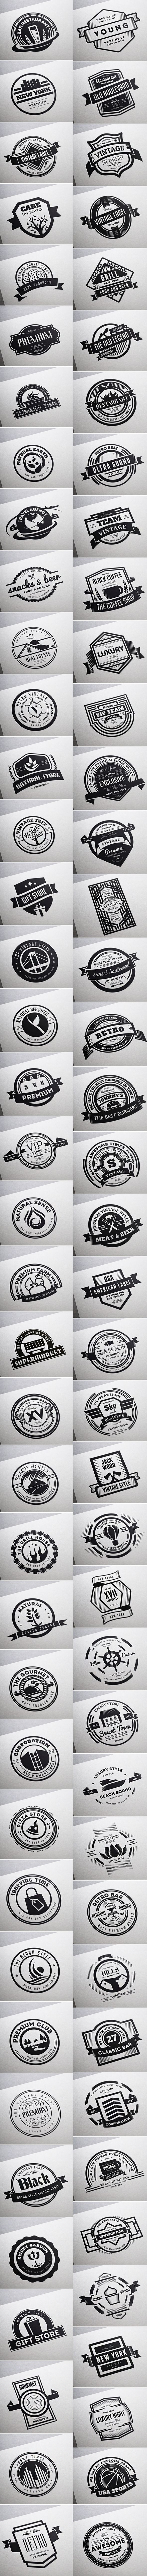 80 Vintage Labels & Badges Logos - Premium Bundle by Design District, via Behance